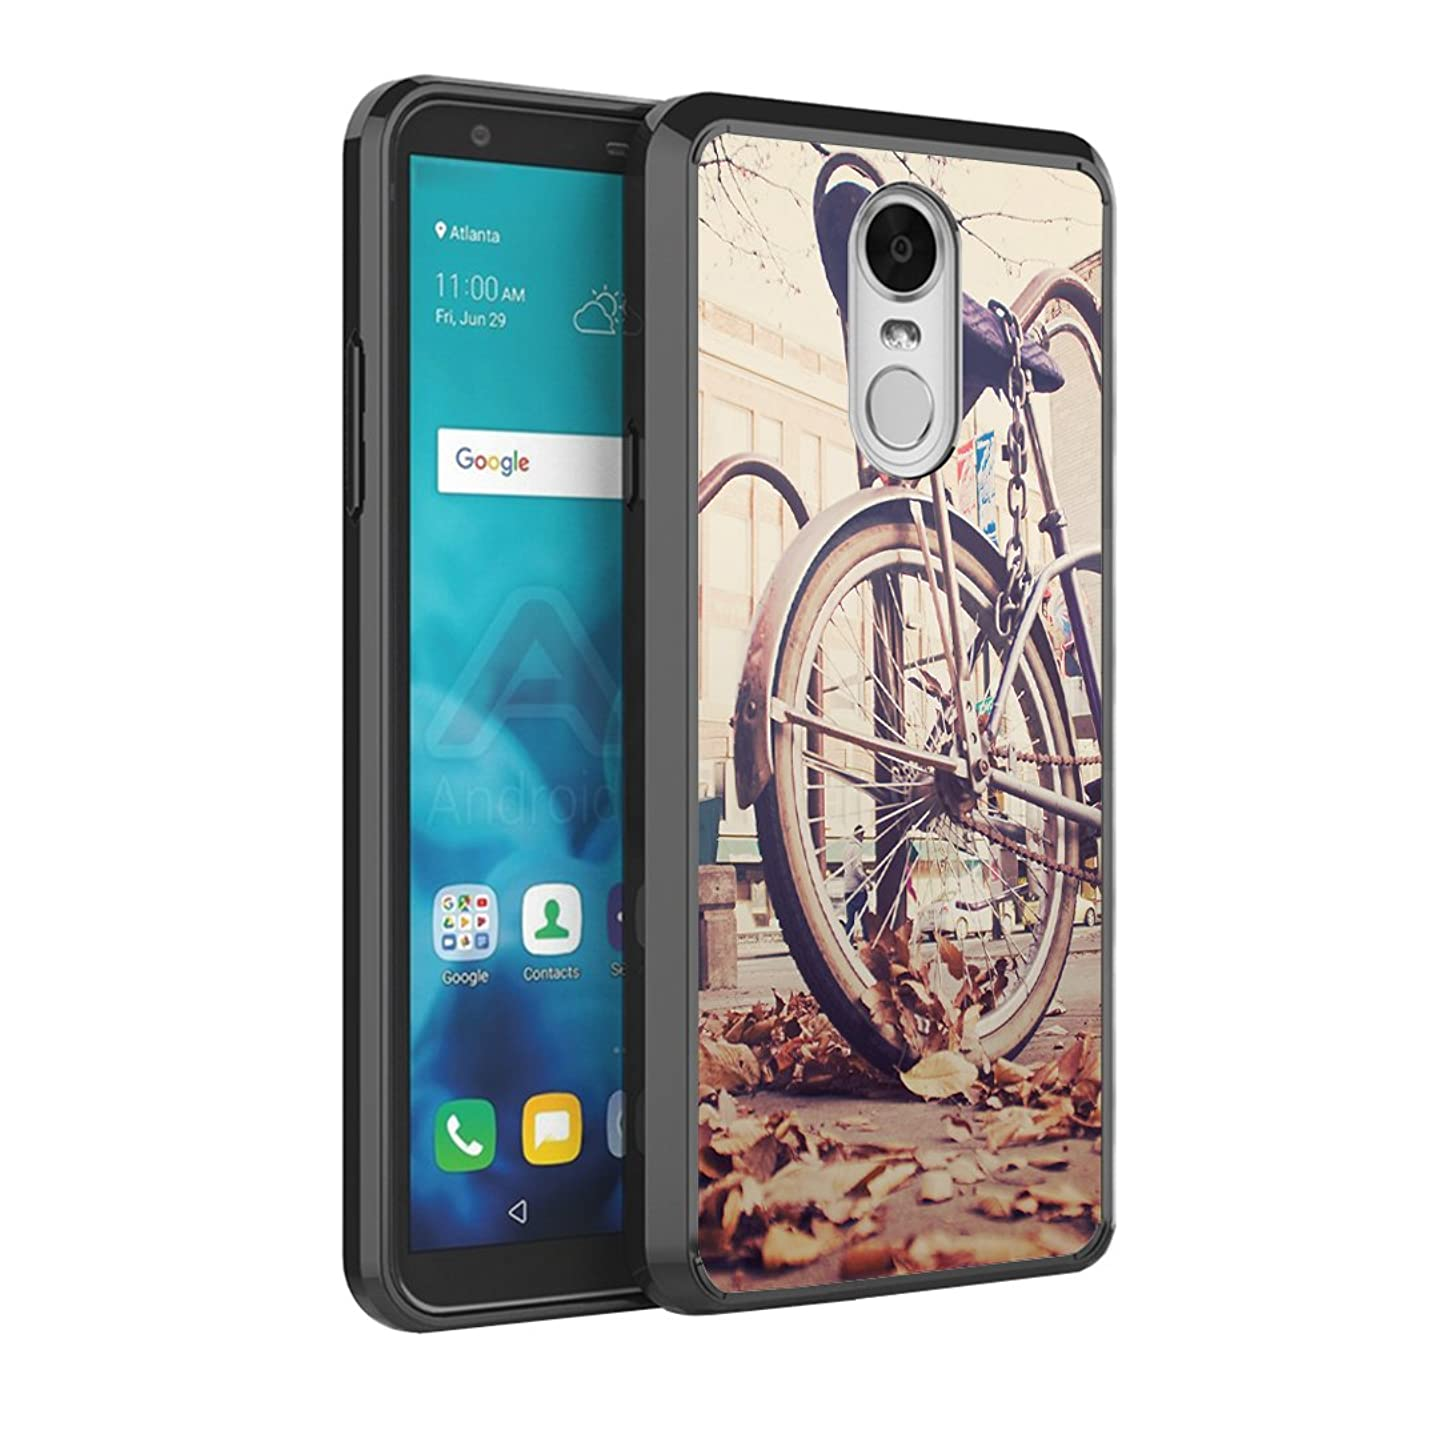 Capsule Case Compatible with LG Stylo 4 Plus, LG Stylo 4, LG Q Stylus [Slim Armor Scratch Resistant Slim Anti-Slip Protective Phone Cover Black Case] for LG Stylo 4 - (Vintage Bicycles)